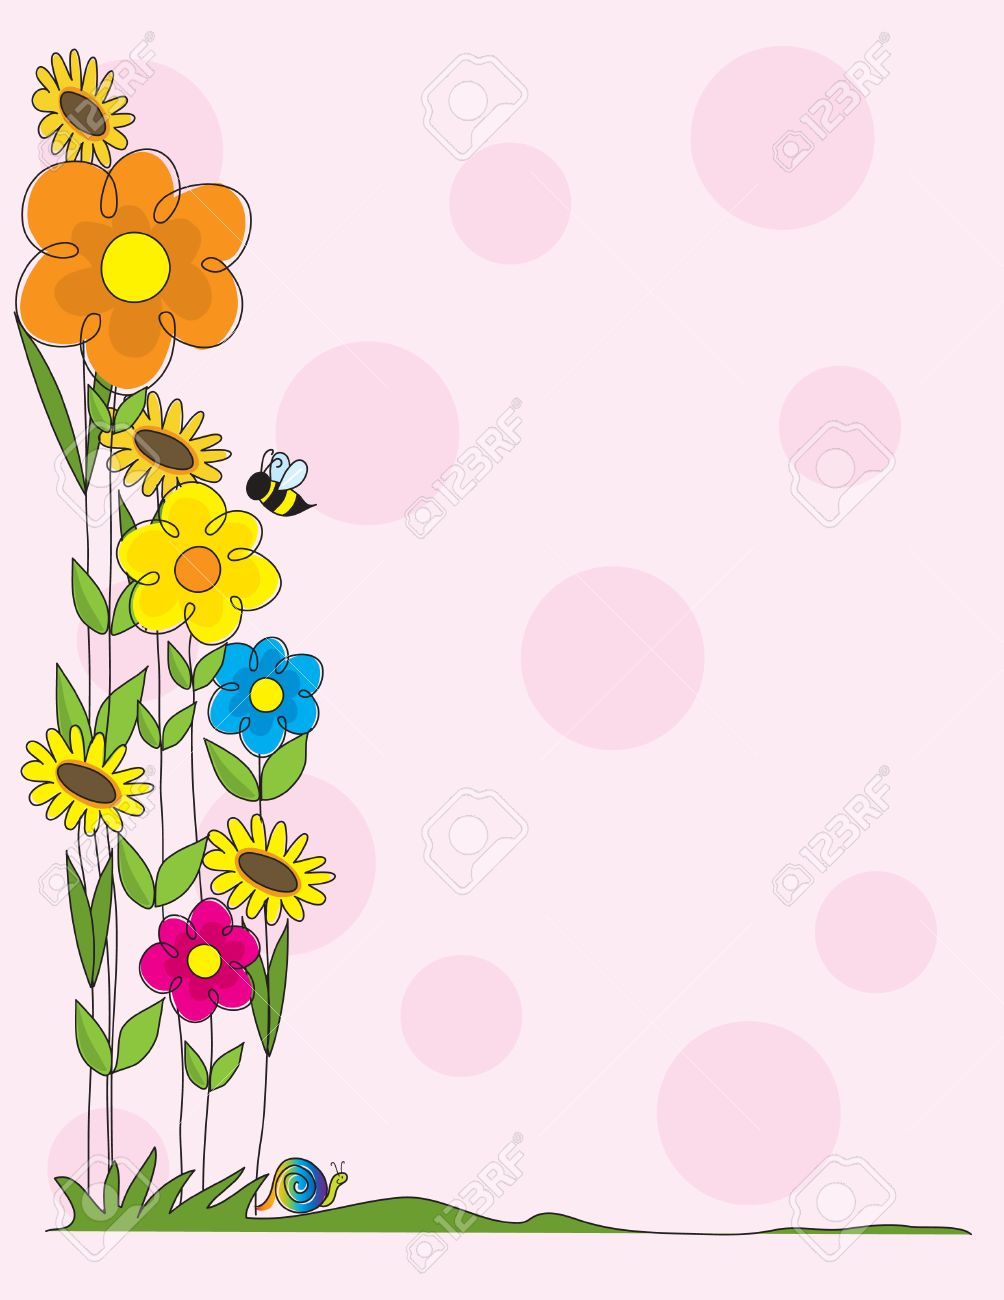 A Spring Garden Scene As Border On Pink Polka Dot Background Stock Vector